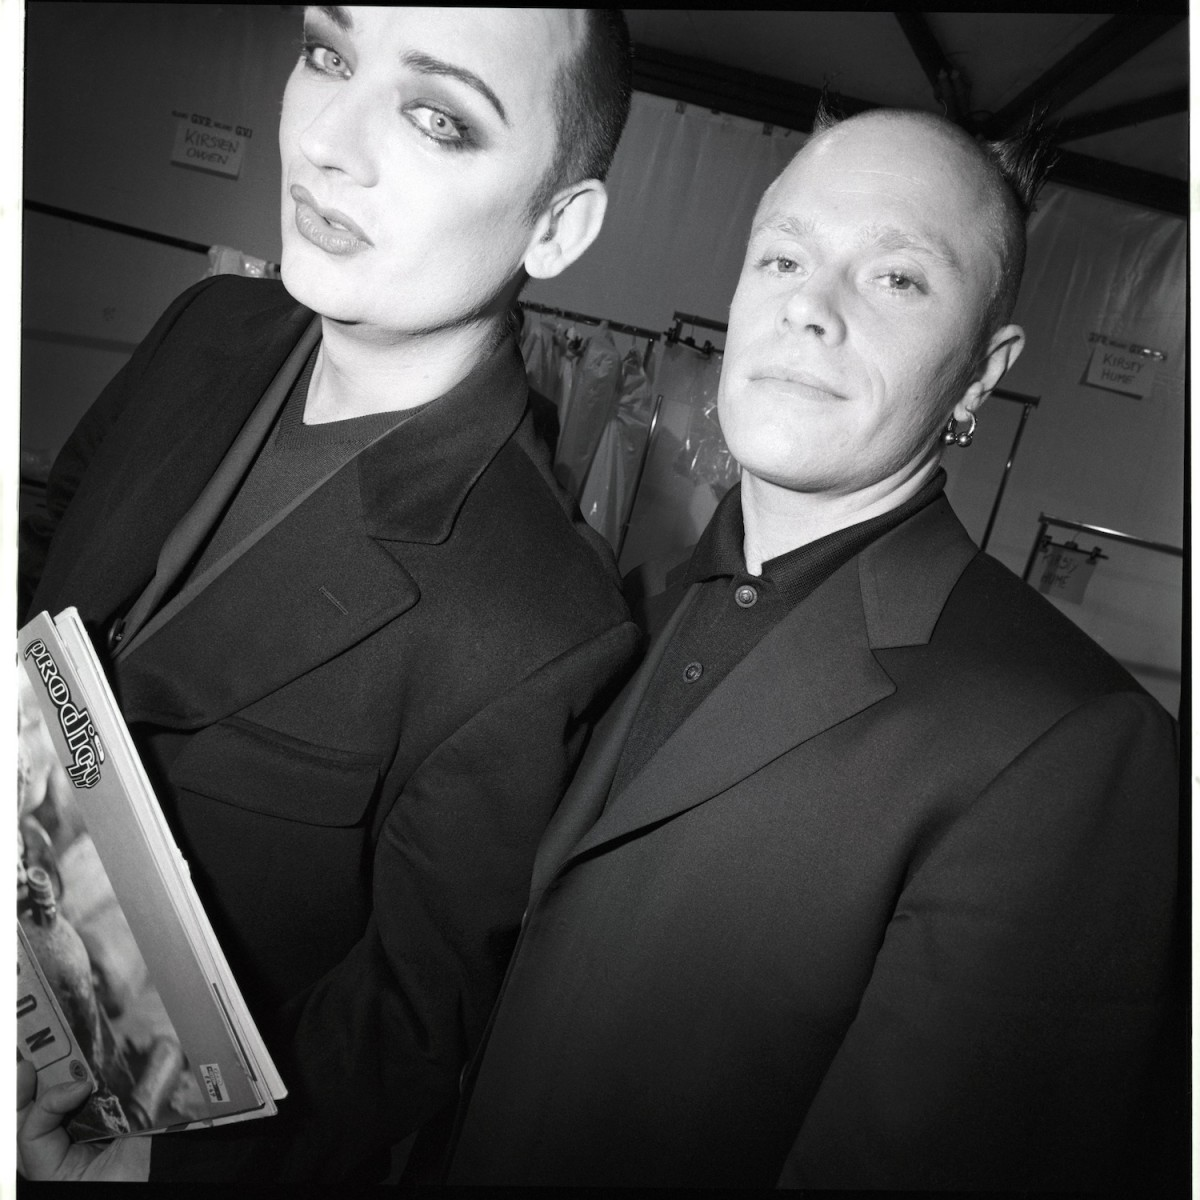 Boy George and Keith Flint at a Fashion Show, 1998